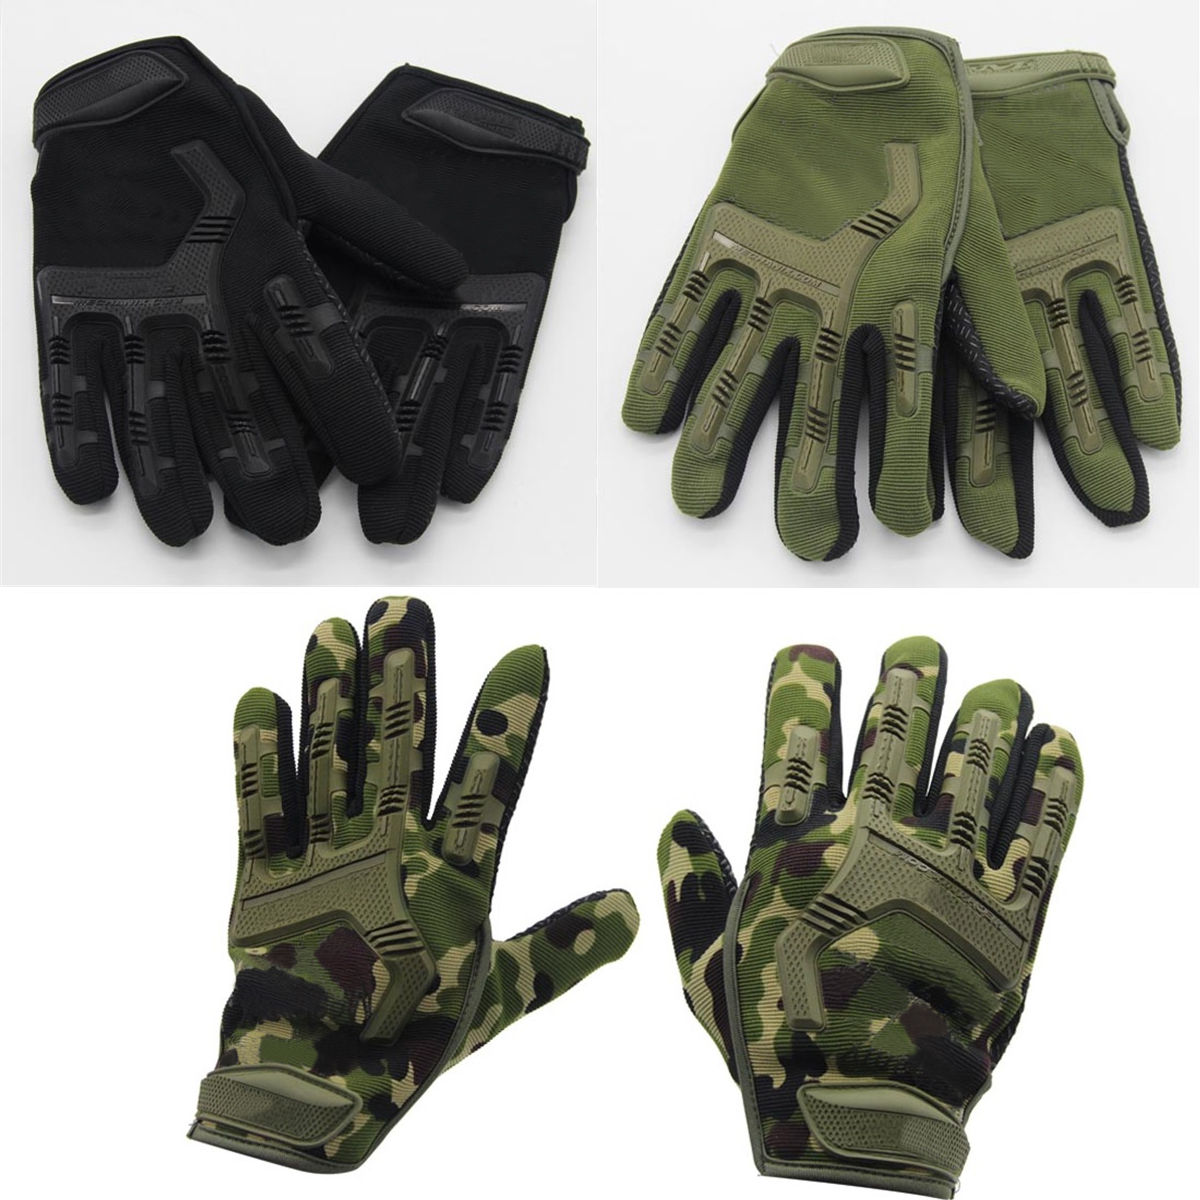 Military Army Tactical Airsoft Shooting Hunting Sports Combat Riding Full Finger GlovesMilitary Army Tactical Airsoft Shooting Hunting Sports Combat Riding Full Finger Gloves